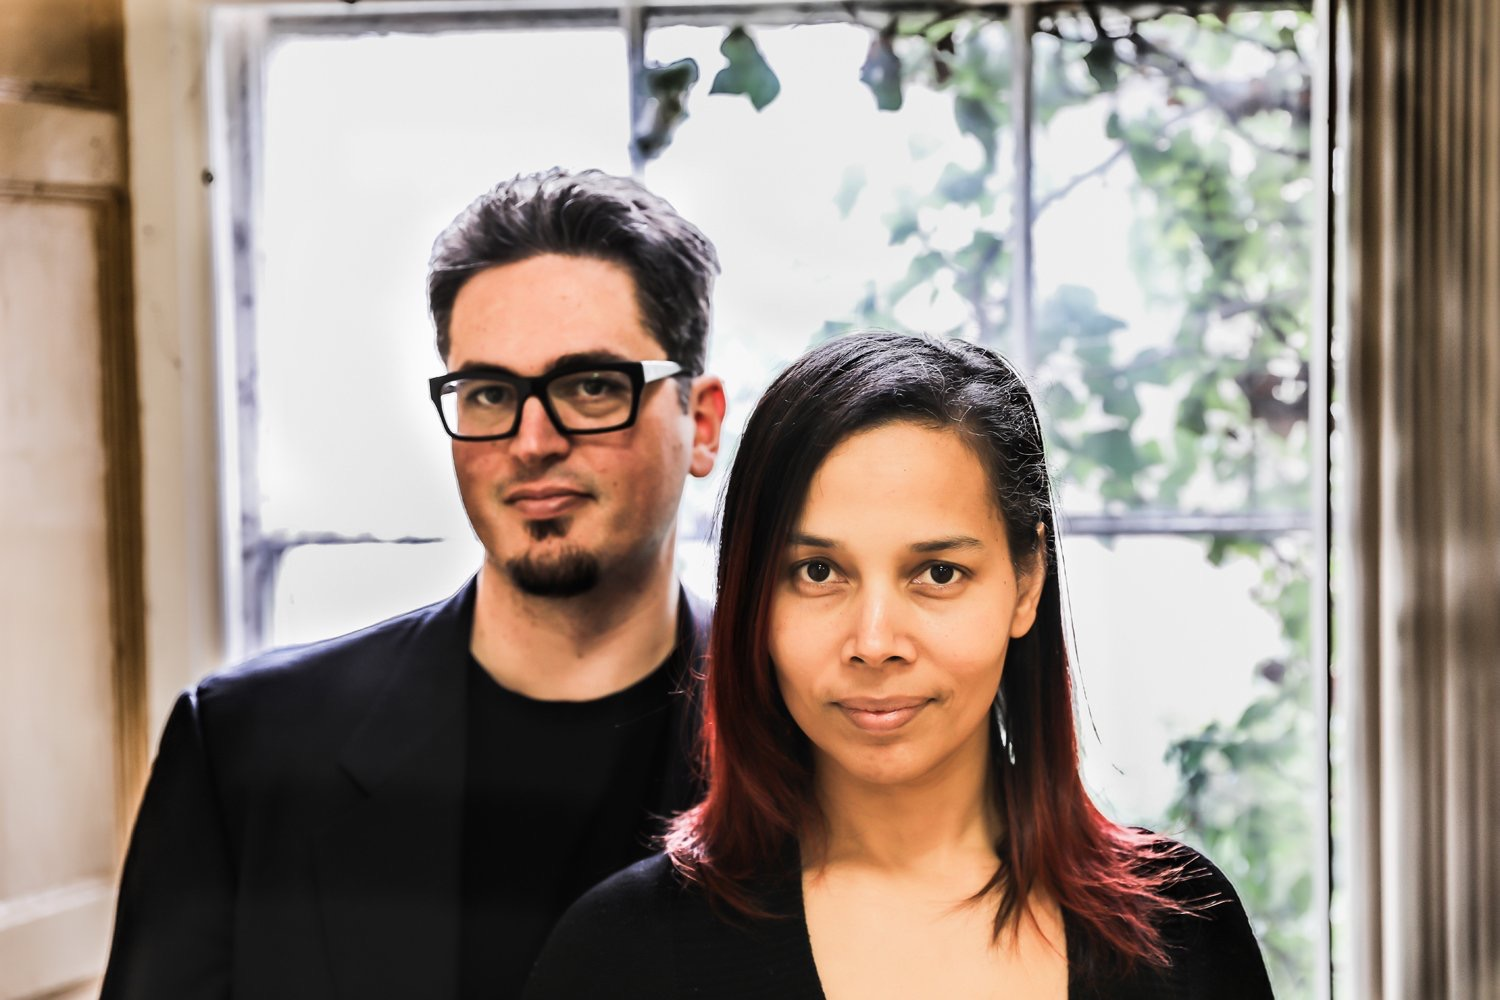 Sundays@Noon: Francesco Turrisi and Rhiannon Giddens